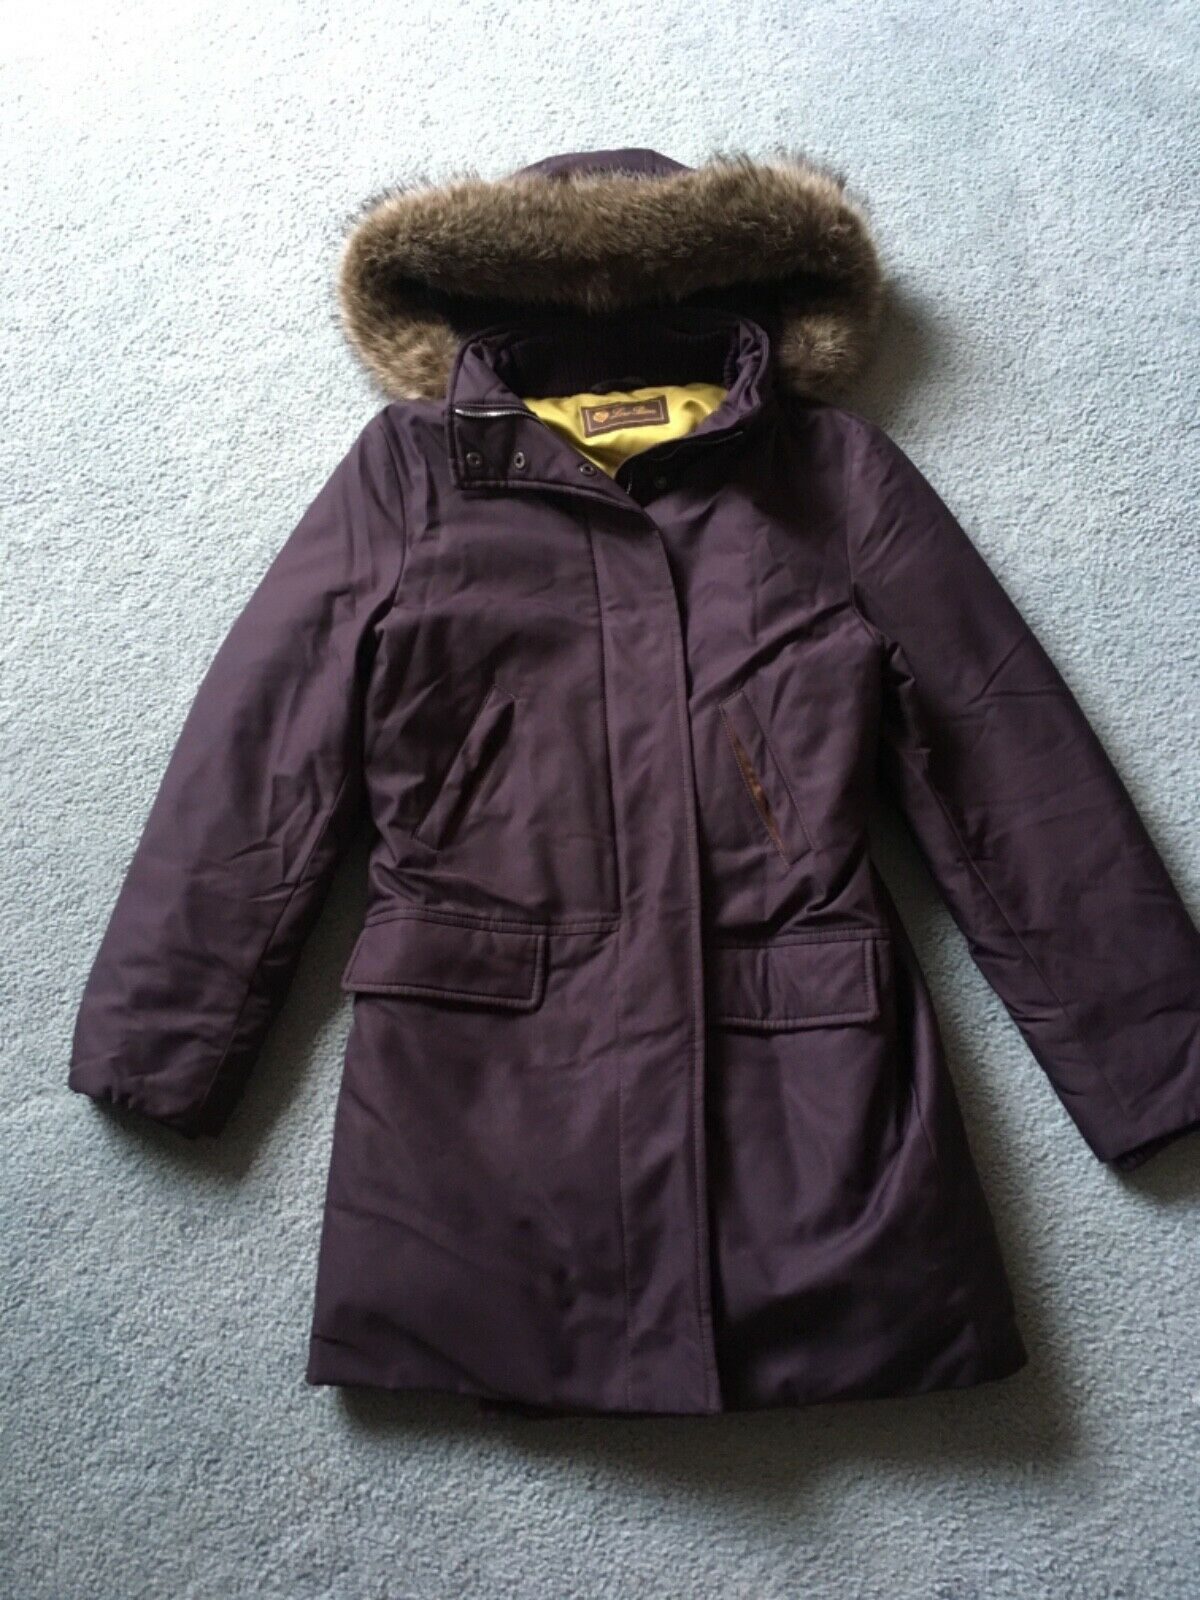 Lgold Piana down coat in excellent condition sz IT 38 AUD 4500